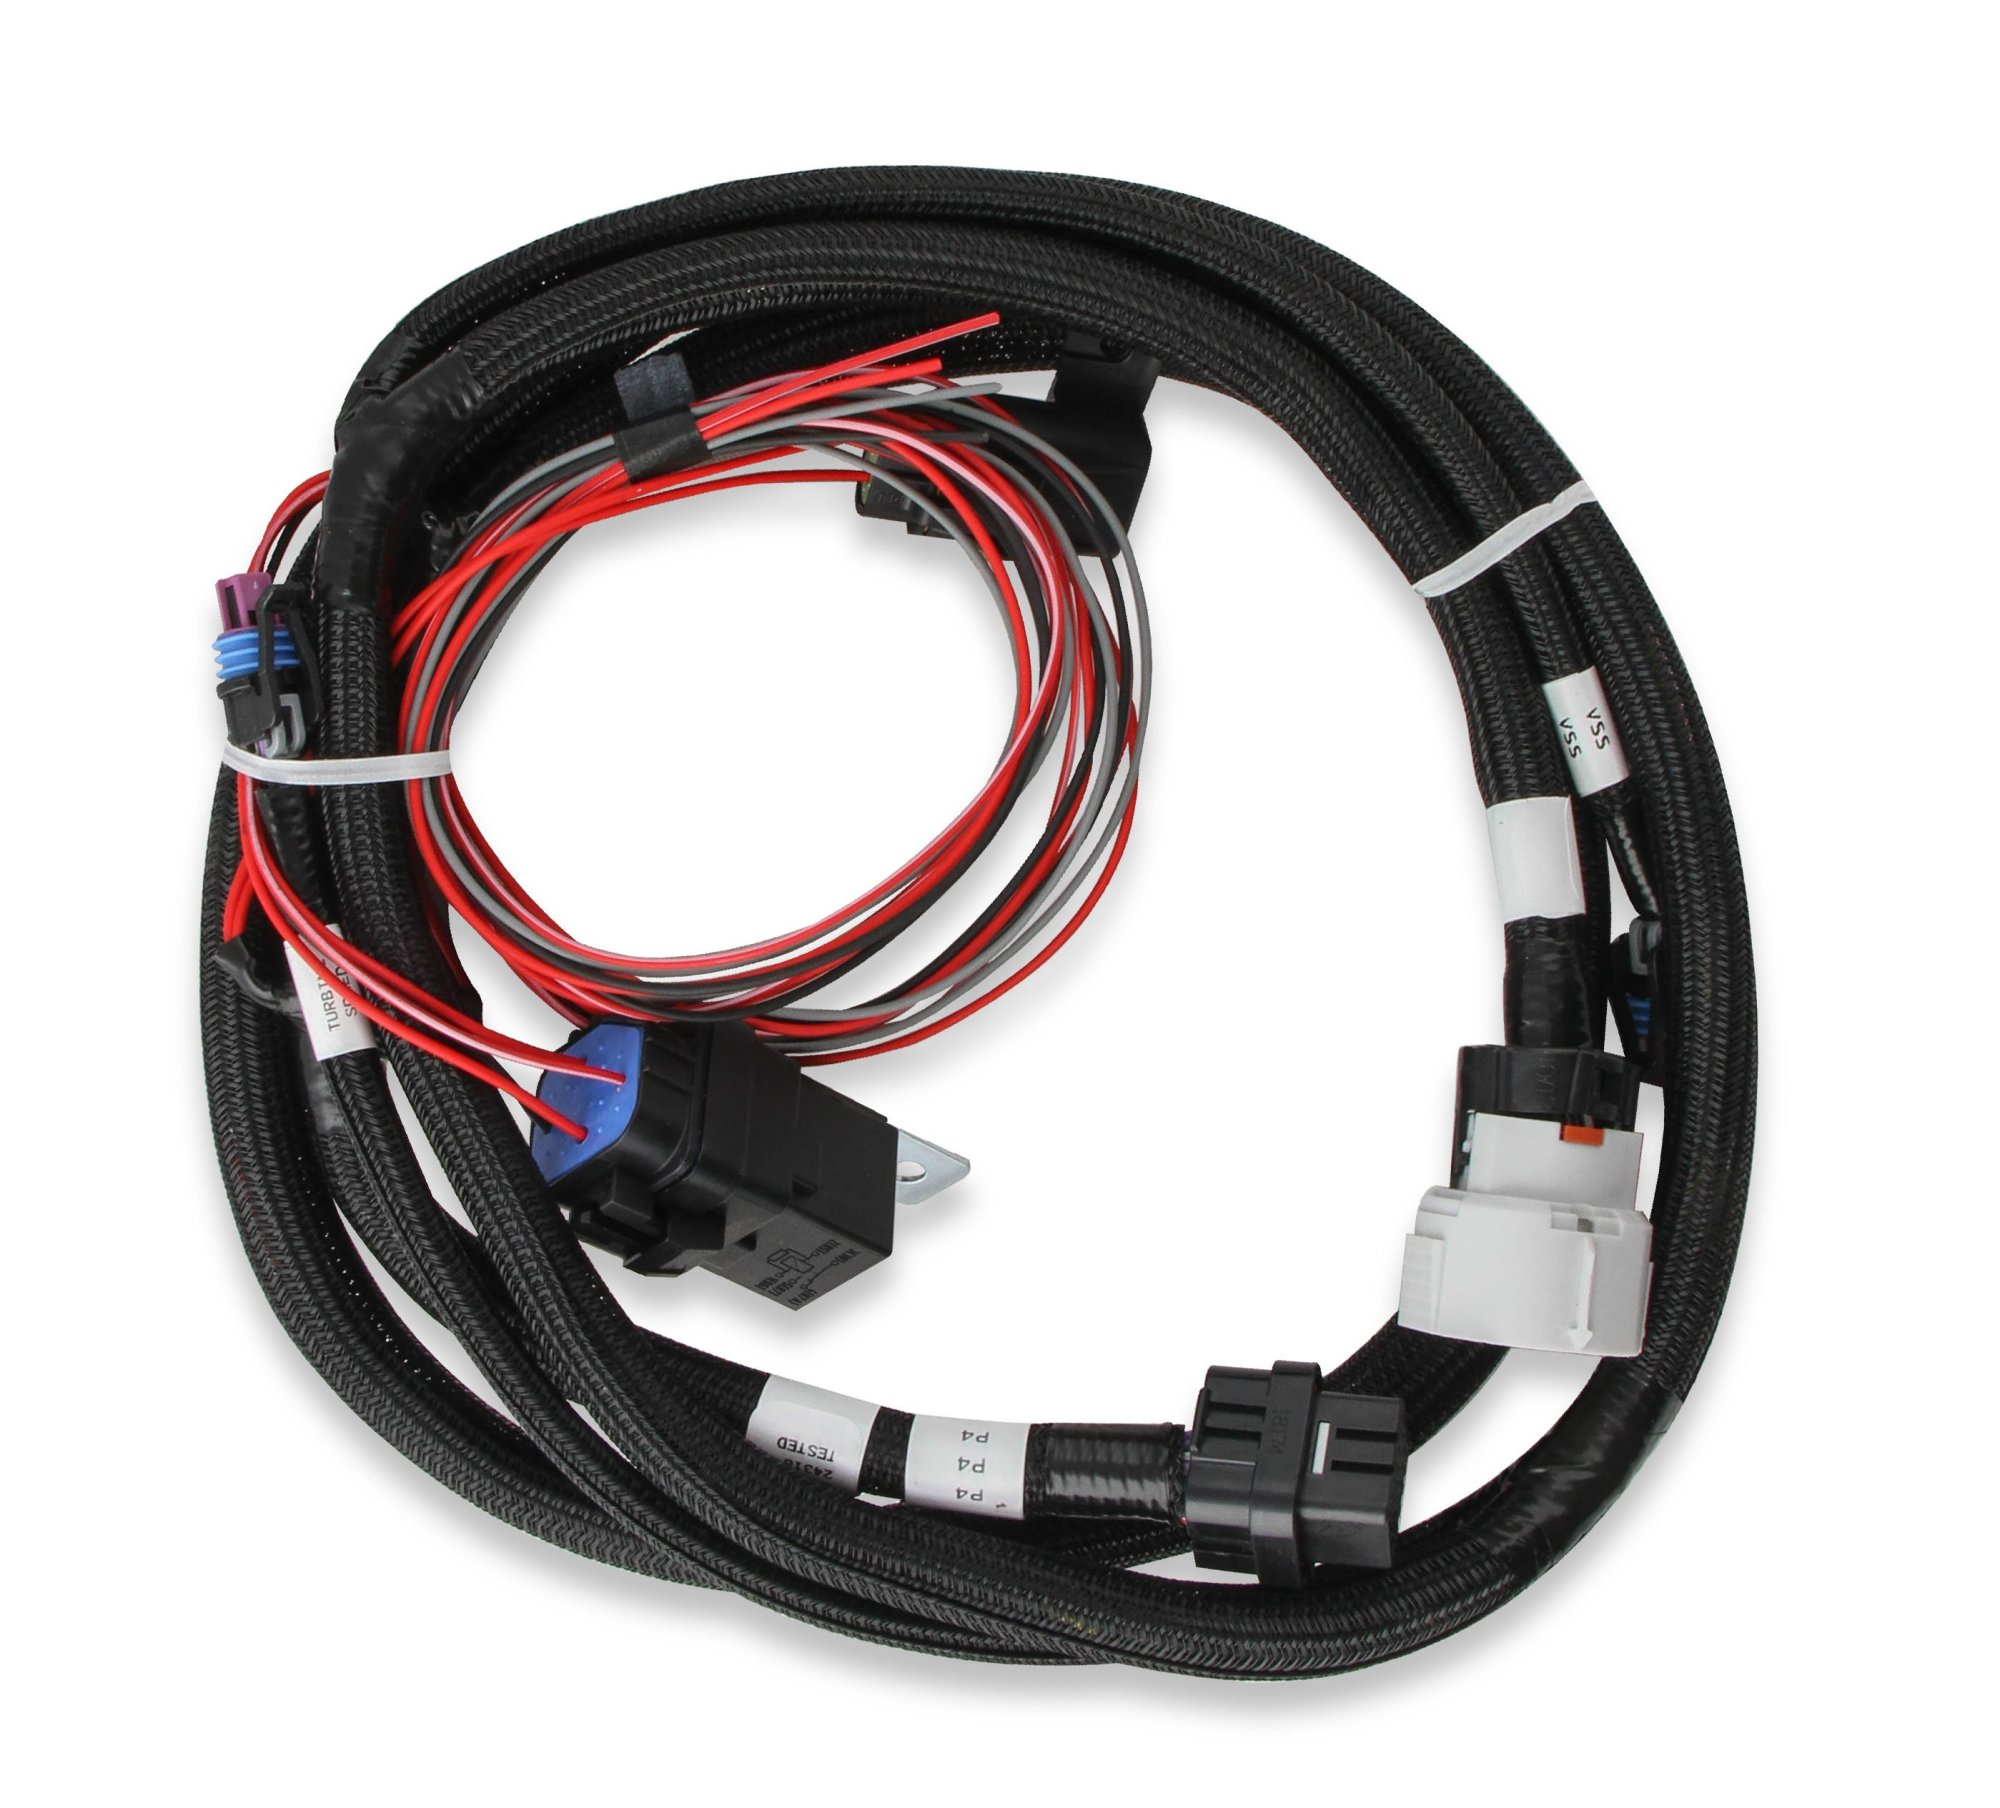 hight resolution of 558 405 gm 4l60 80e transmission harness image